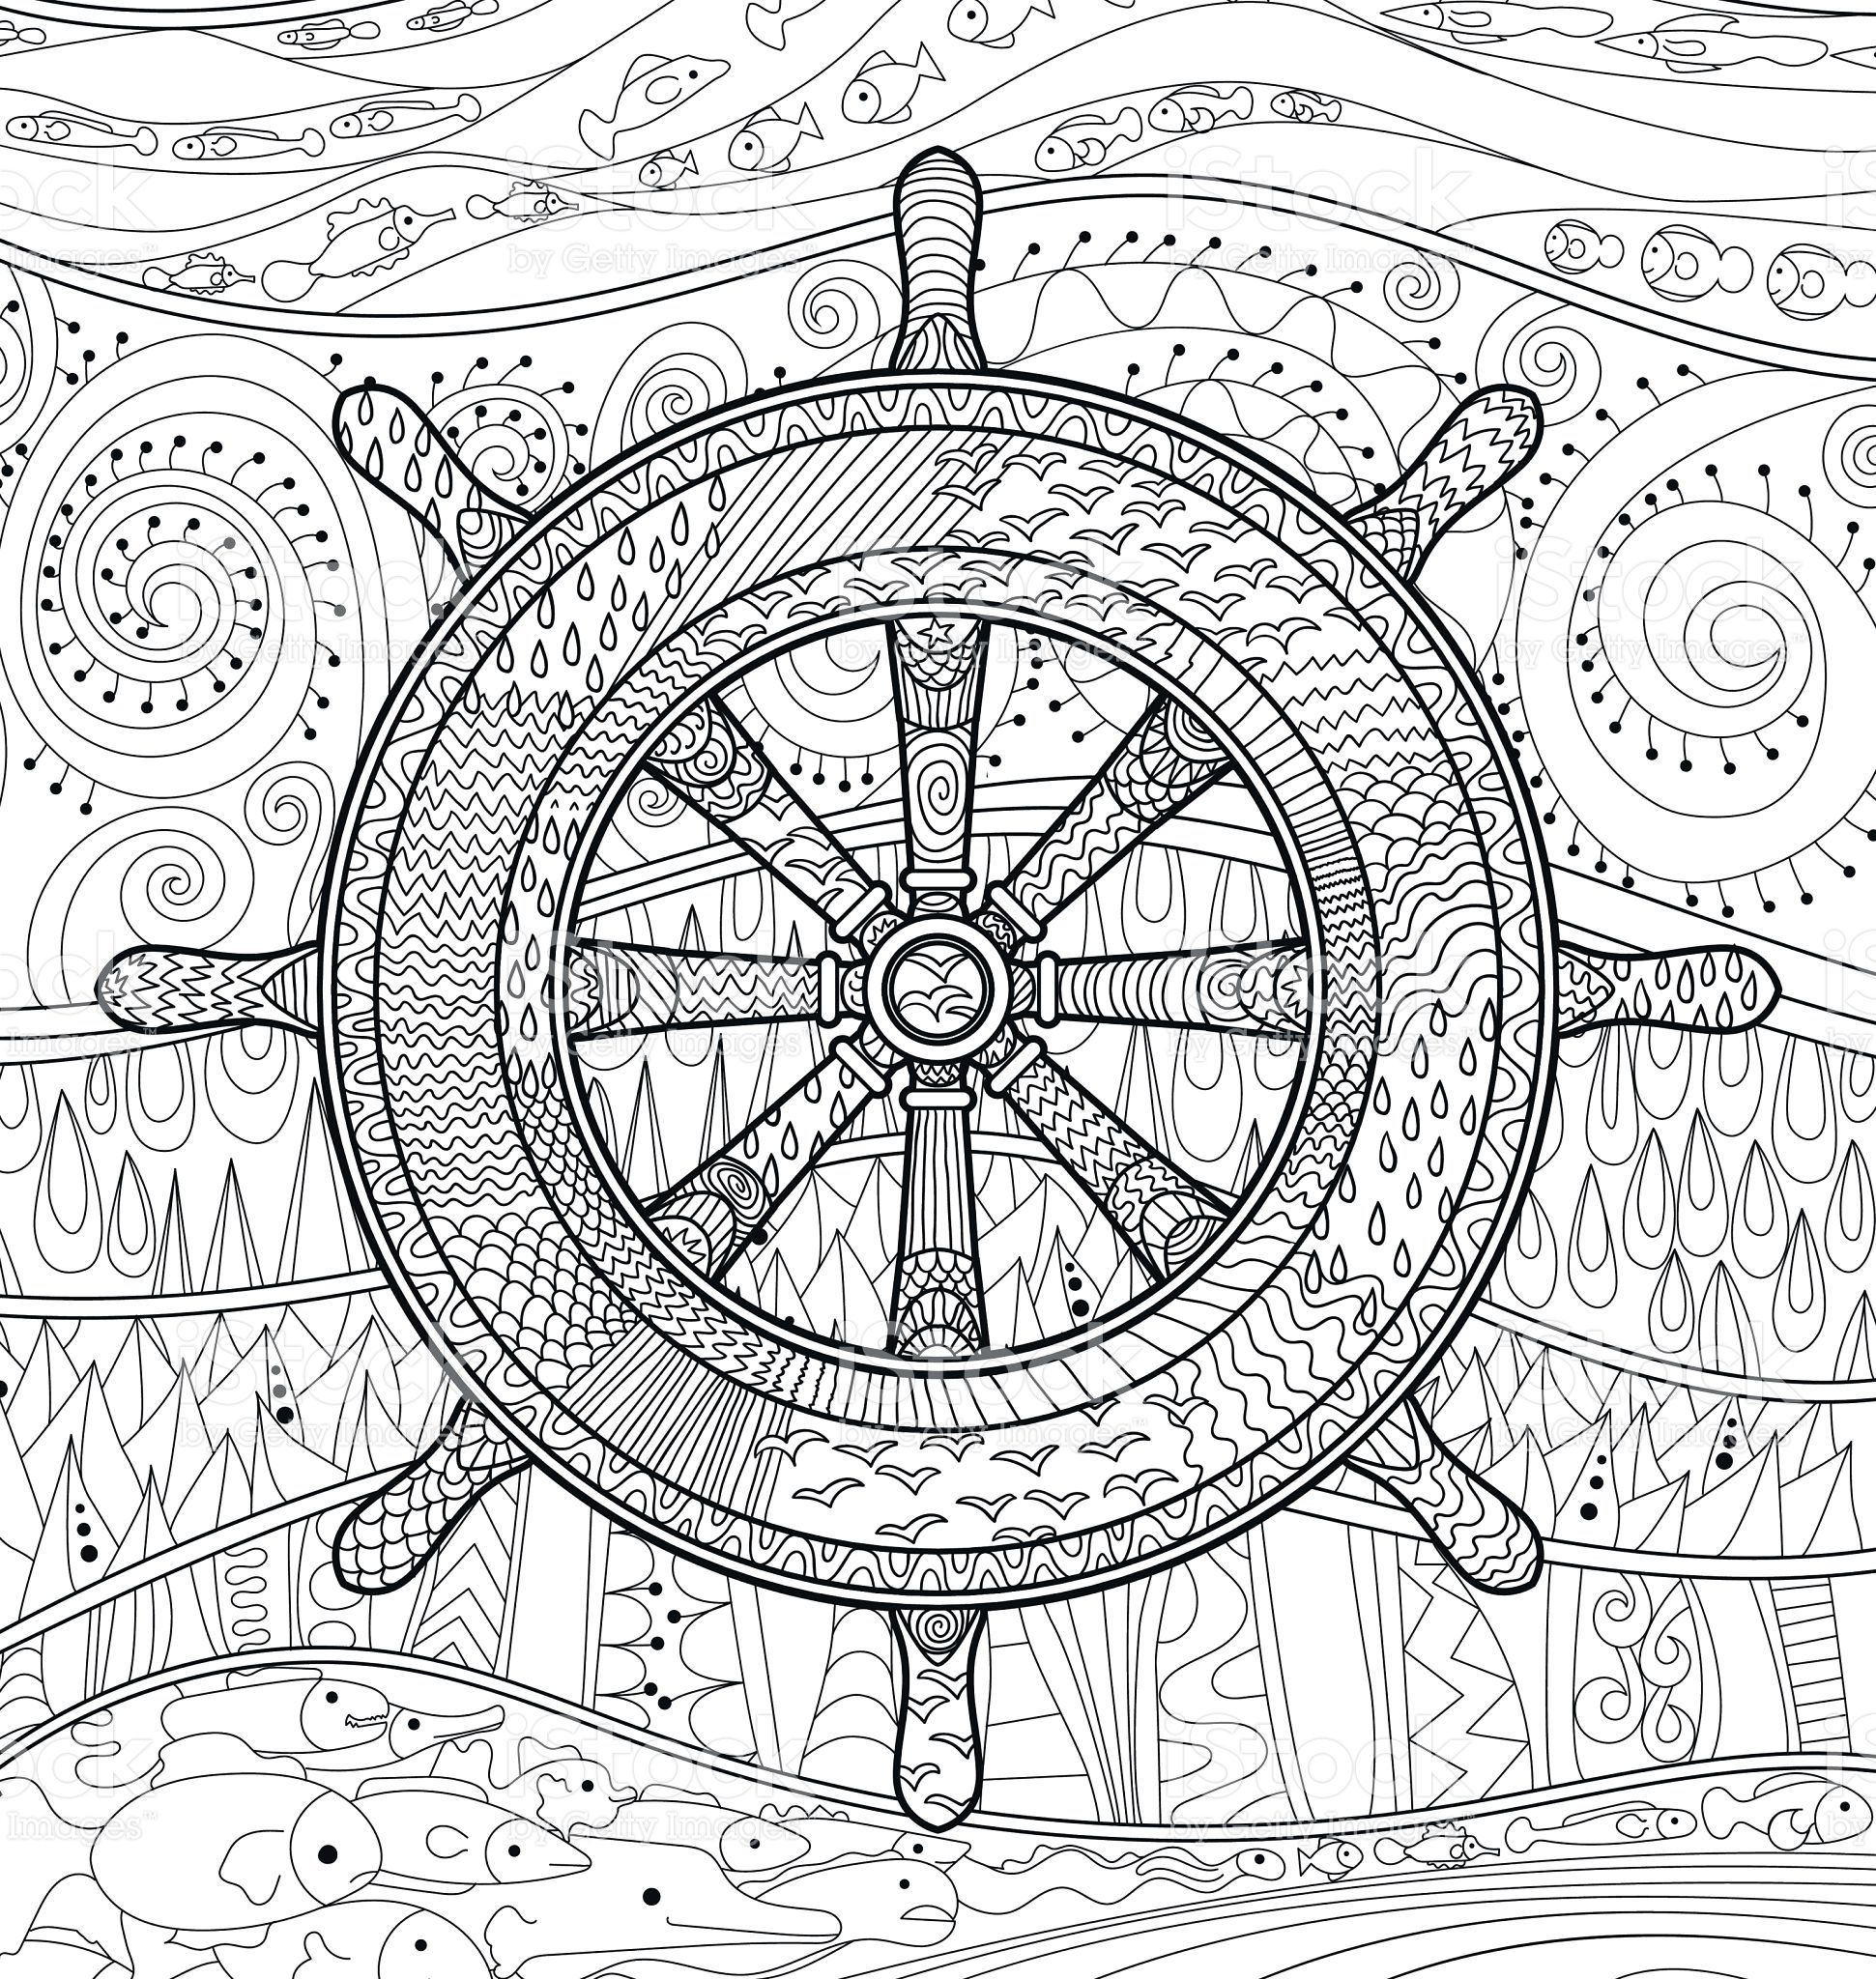 Hand drawn illustration of an helm adult antistress coloring page